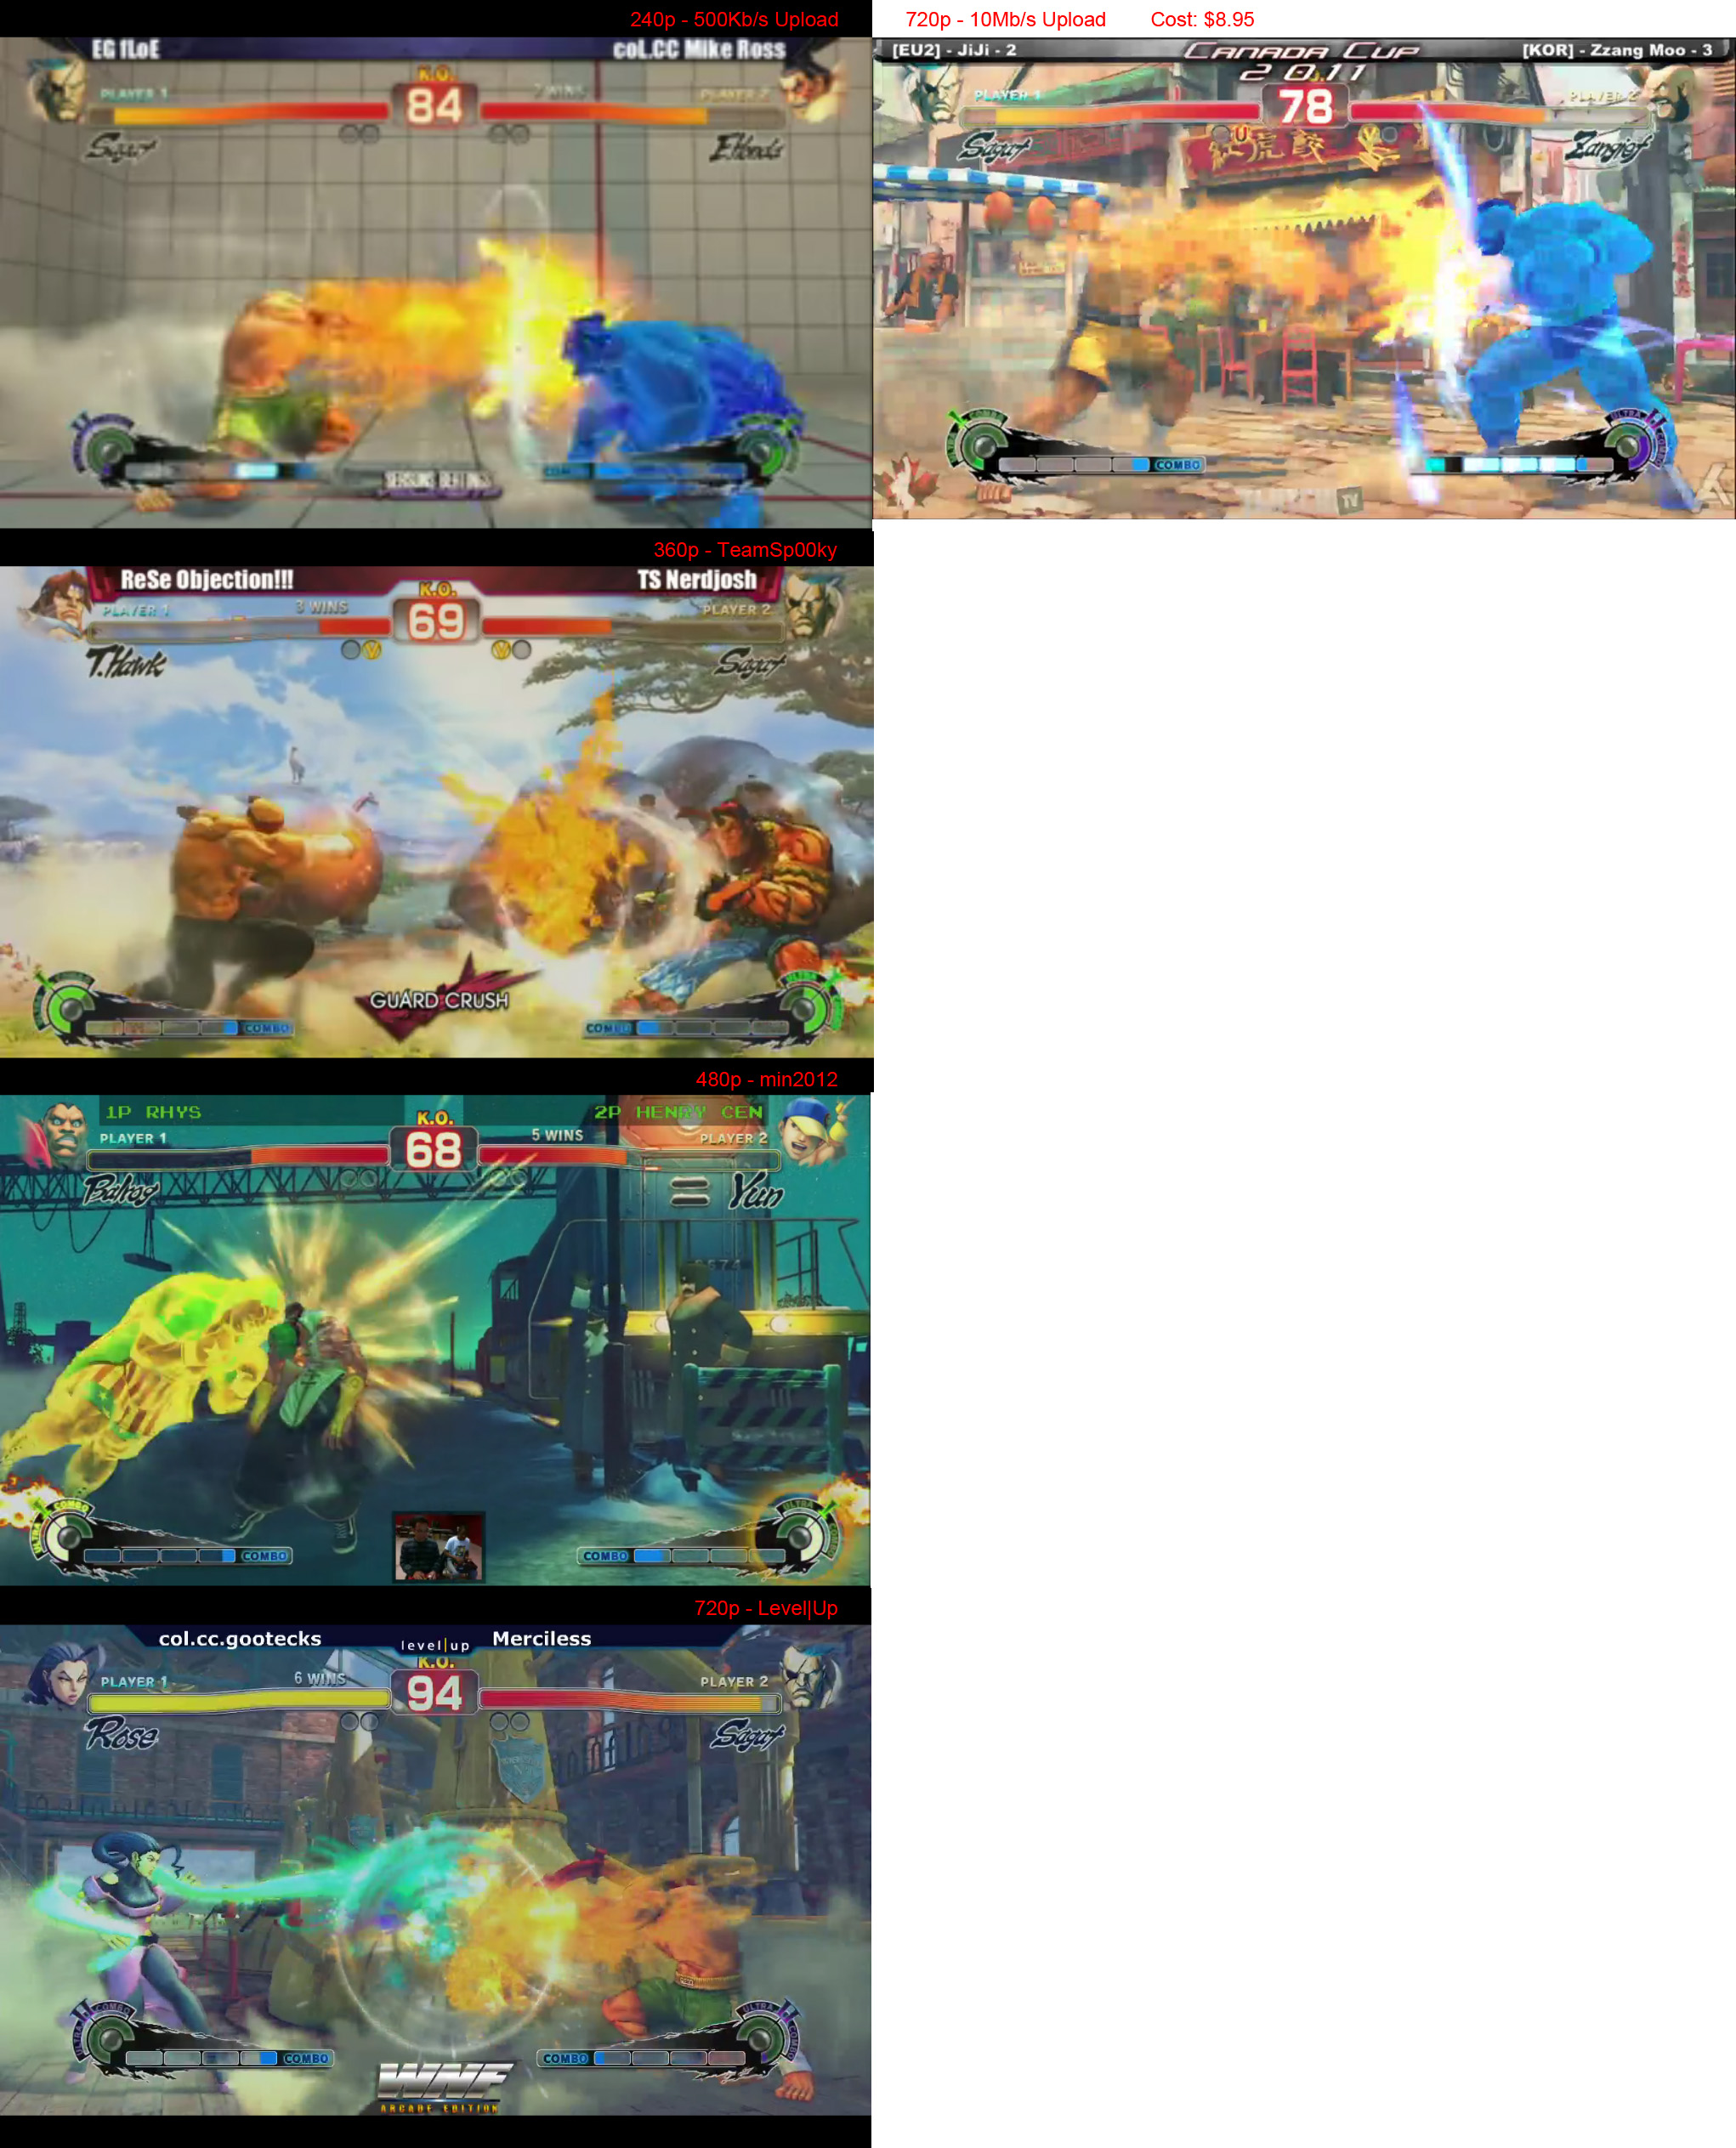 cjskater games damage from frames crouching will hitbox combo kick hits easier active frame super opponent with that stun fadc block after increased into version opponents when total medium hurtbox during have first same second more this startup characters heavy down start-up does making less standing meter been before only changed gets